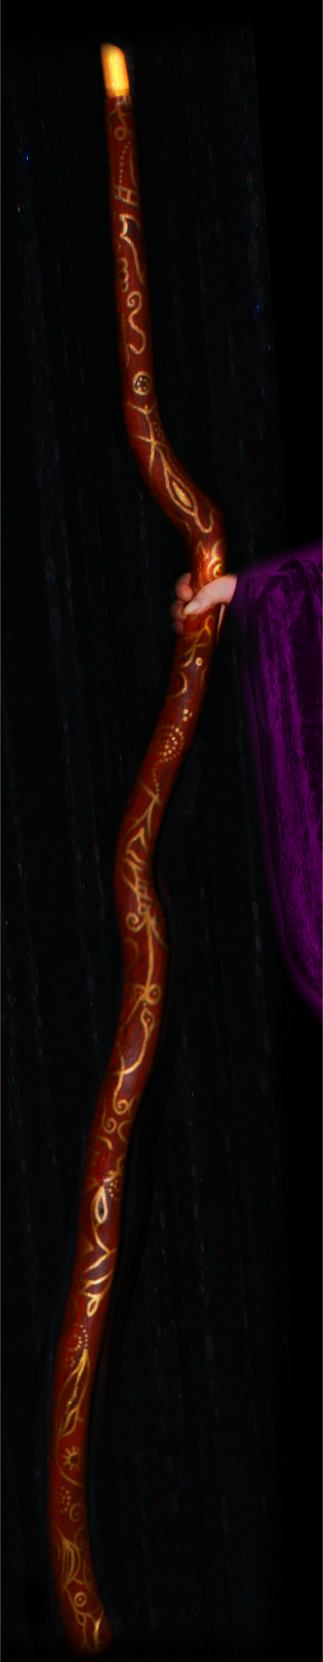 Real Magic Staff for magic spells and rituals